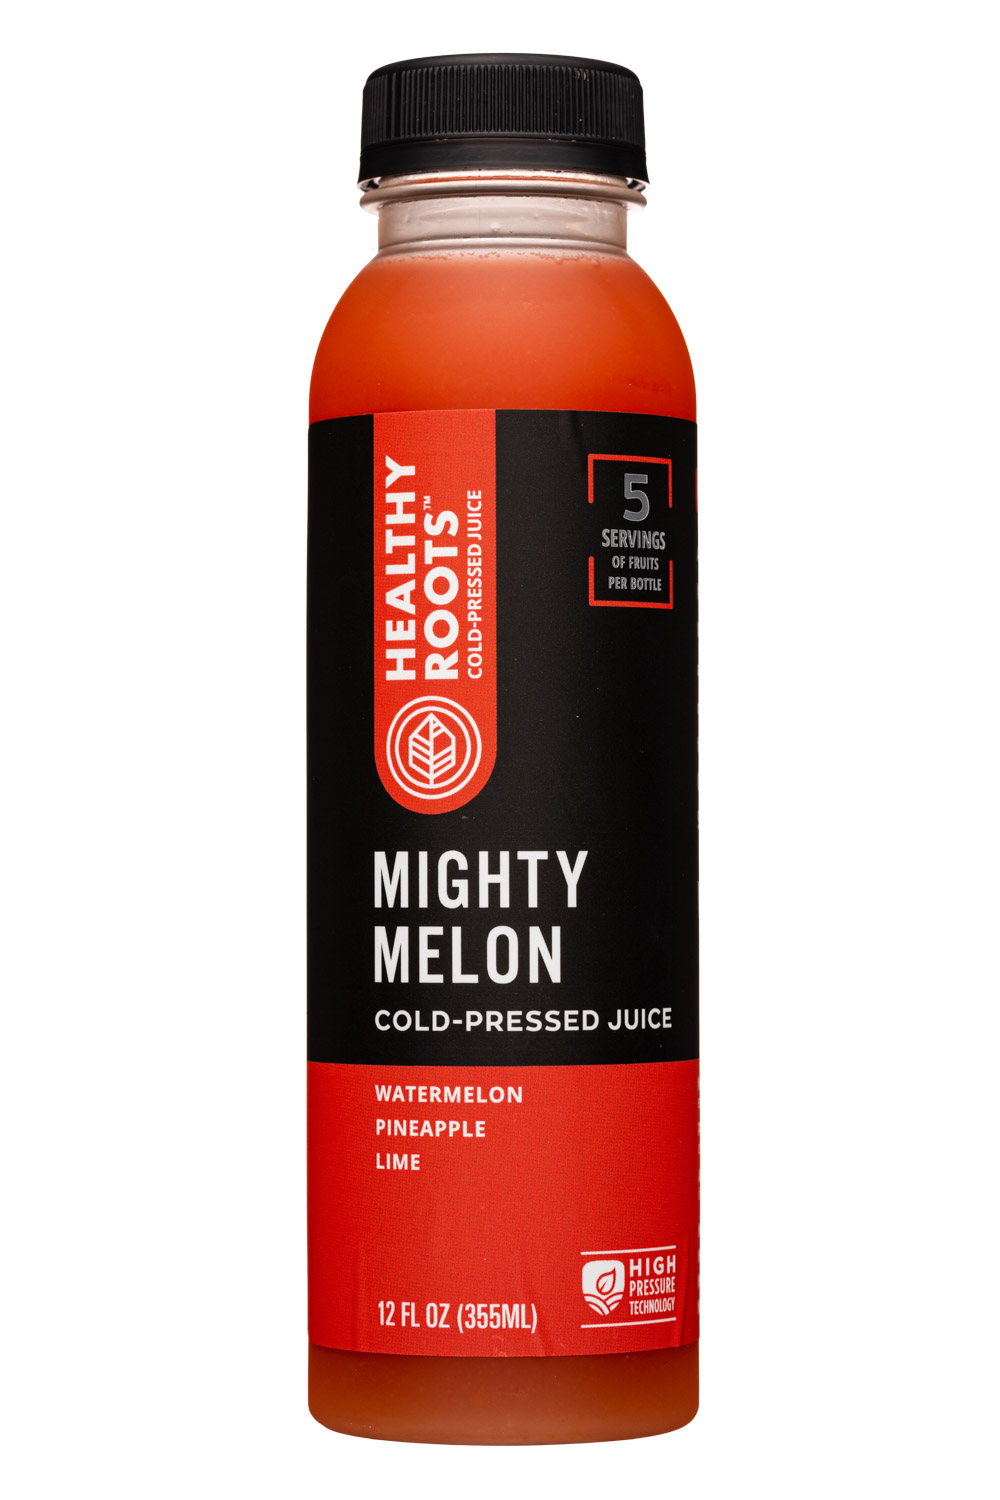 Mighty Melon (Watermelon, Pineapple, Lime)